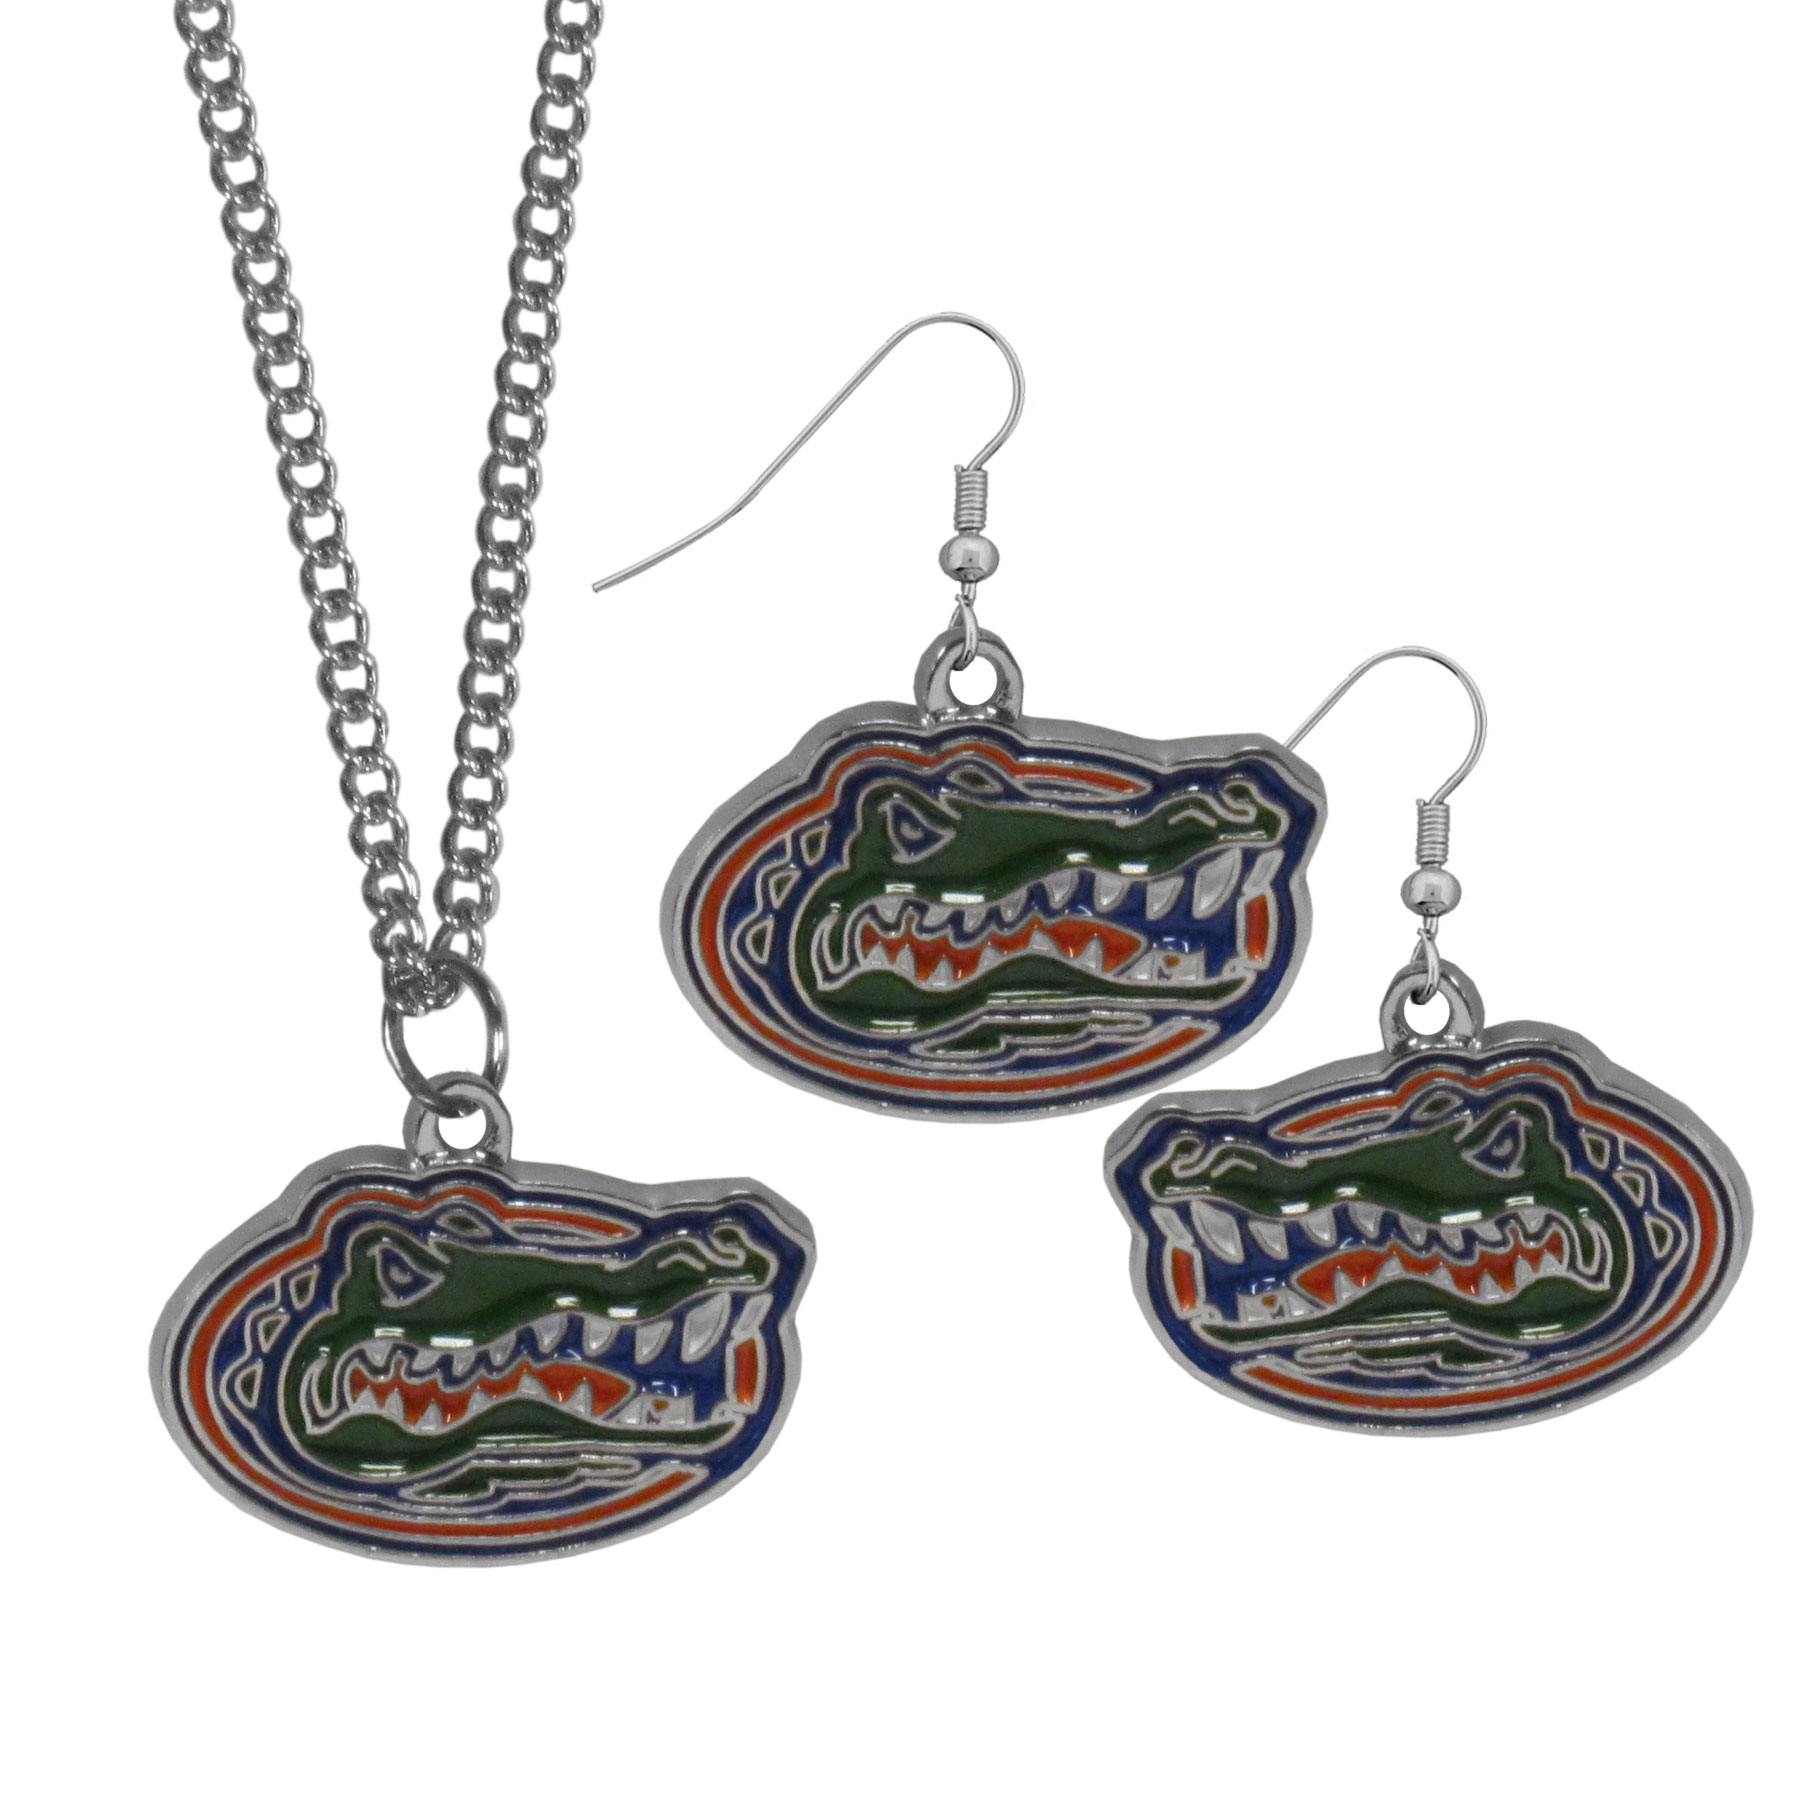 Florida Gators Dangle Earrings and Chain Necklace Set - This classic jewelry set contains are most popular Florida Gators dangle earrings and 22 inch chain necklace. The trendy, dangle earrings are lightweight and feature a fully cast metal team charm with enameled team colors. The matching necklace completes this fashion forward combo and is a spirited set that is perfect for game day but nice enough for everyday.